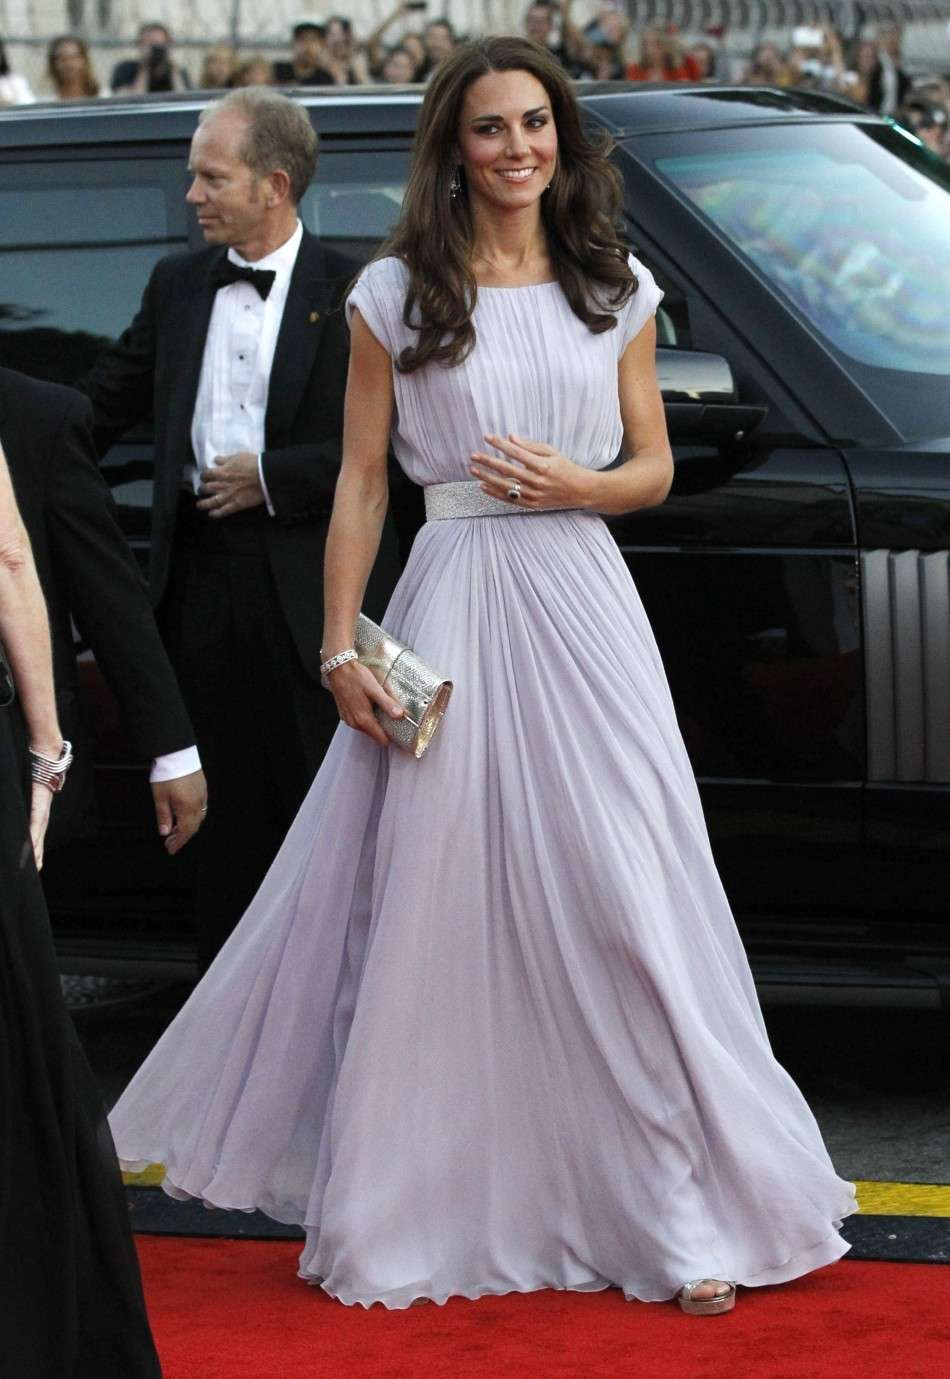 Vestito da sposa di kate middleton